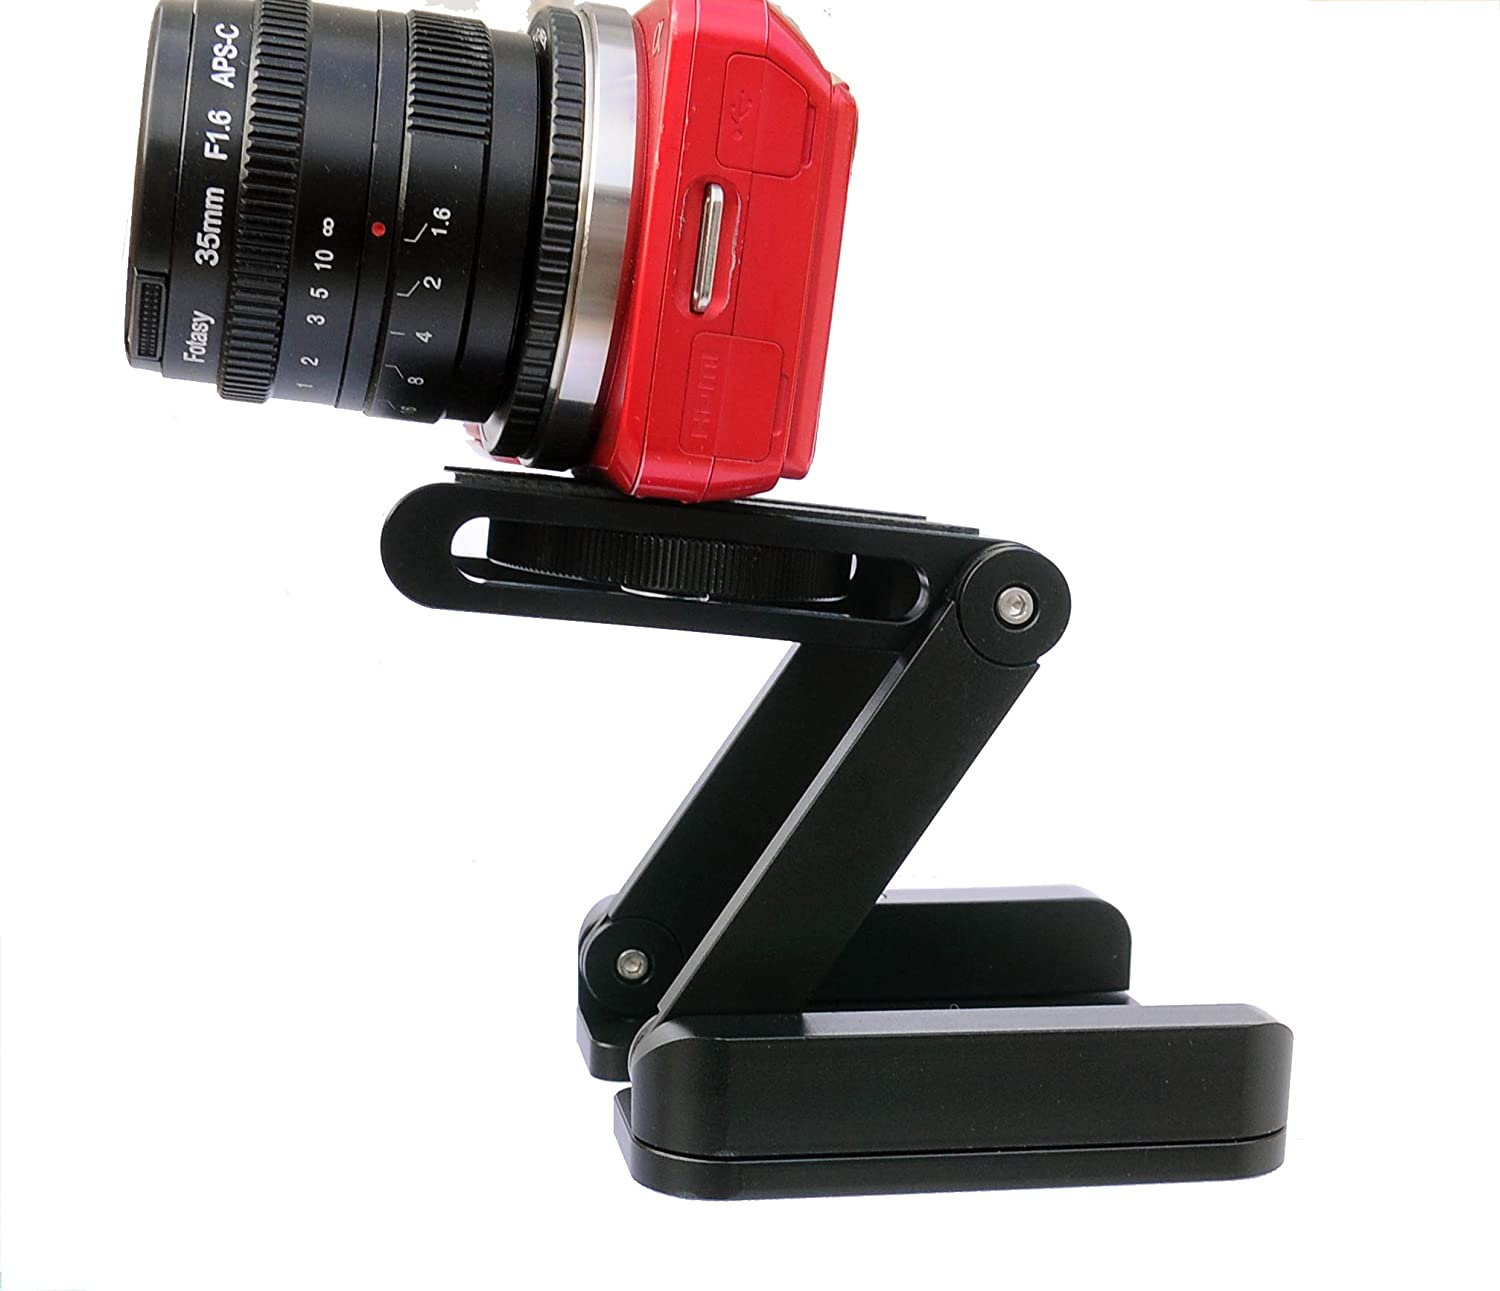 Long Arca Type Plate Tripod Quick Release Plate fits Arca-Swiss Universal Standard Clamp for DSLR Camera Lens Tripod Ballhead Quick Release Plate 120 mm QR Plate Fotasy 120mm Arca Swiss Plate